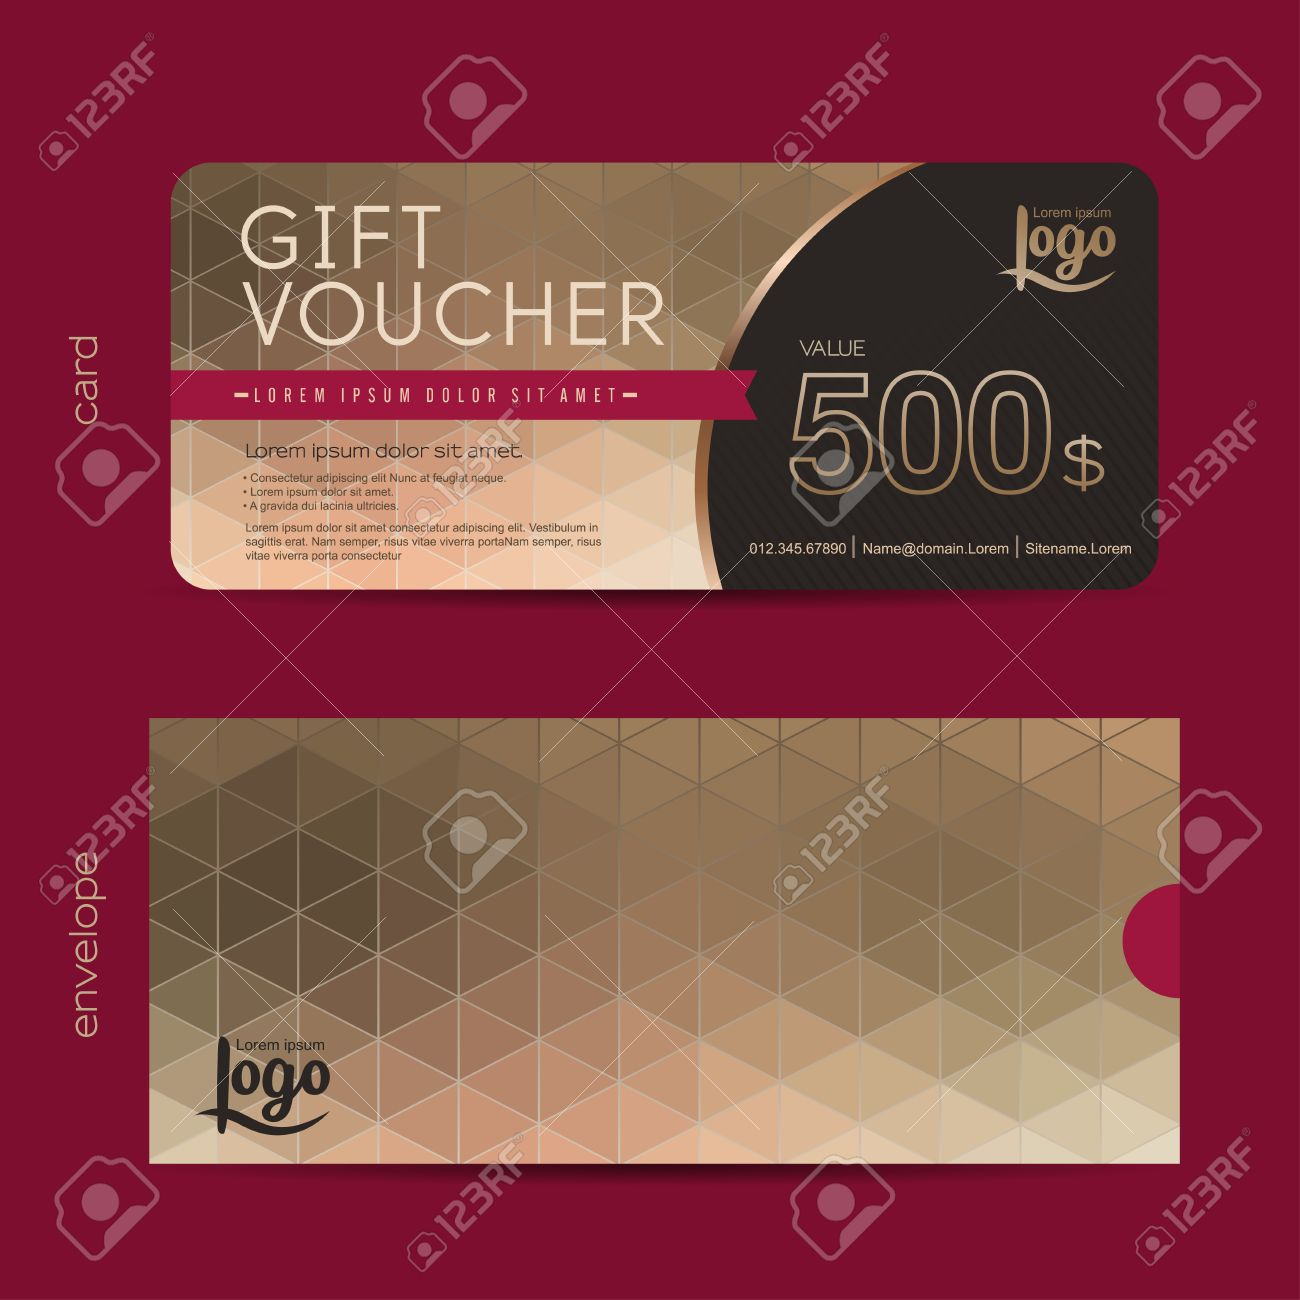 Gift voucher template with premium pattern and envelope designcute gift voucher template with premium pattern and envelope designcute gift voucher certificate coupon design maxwellsz